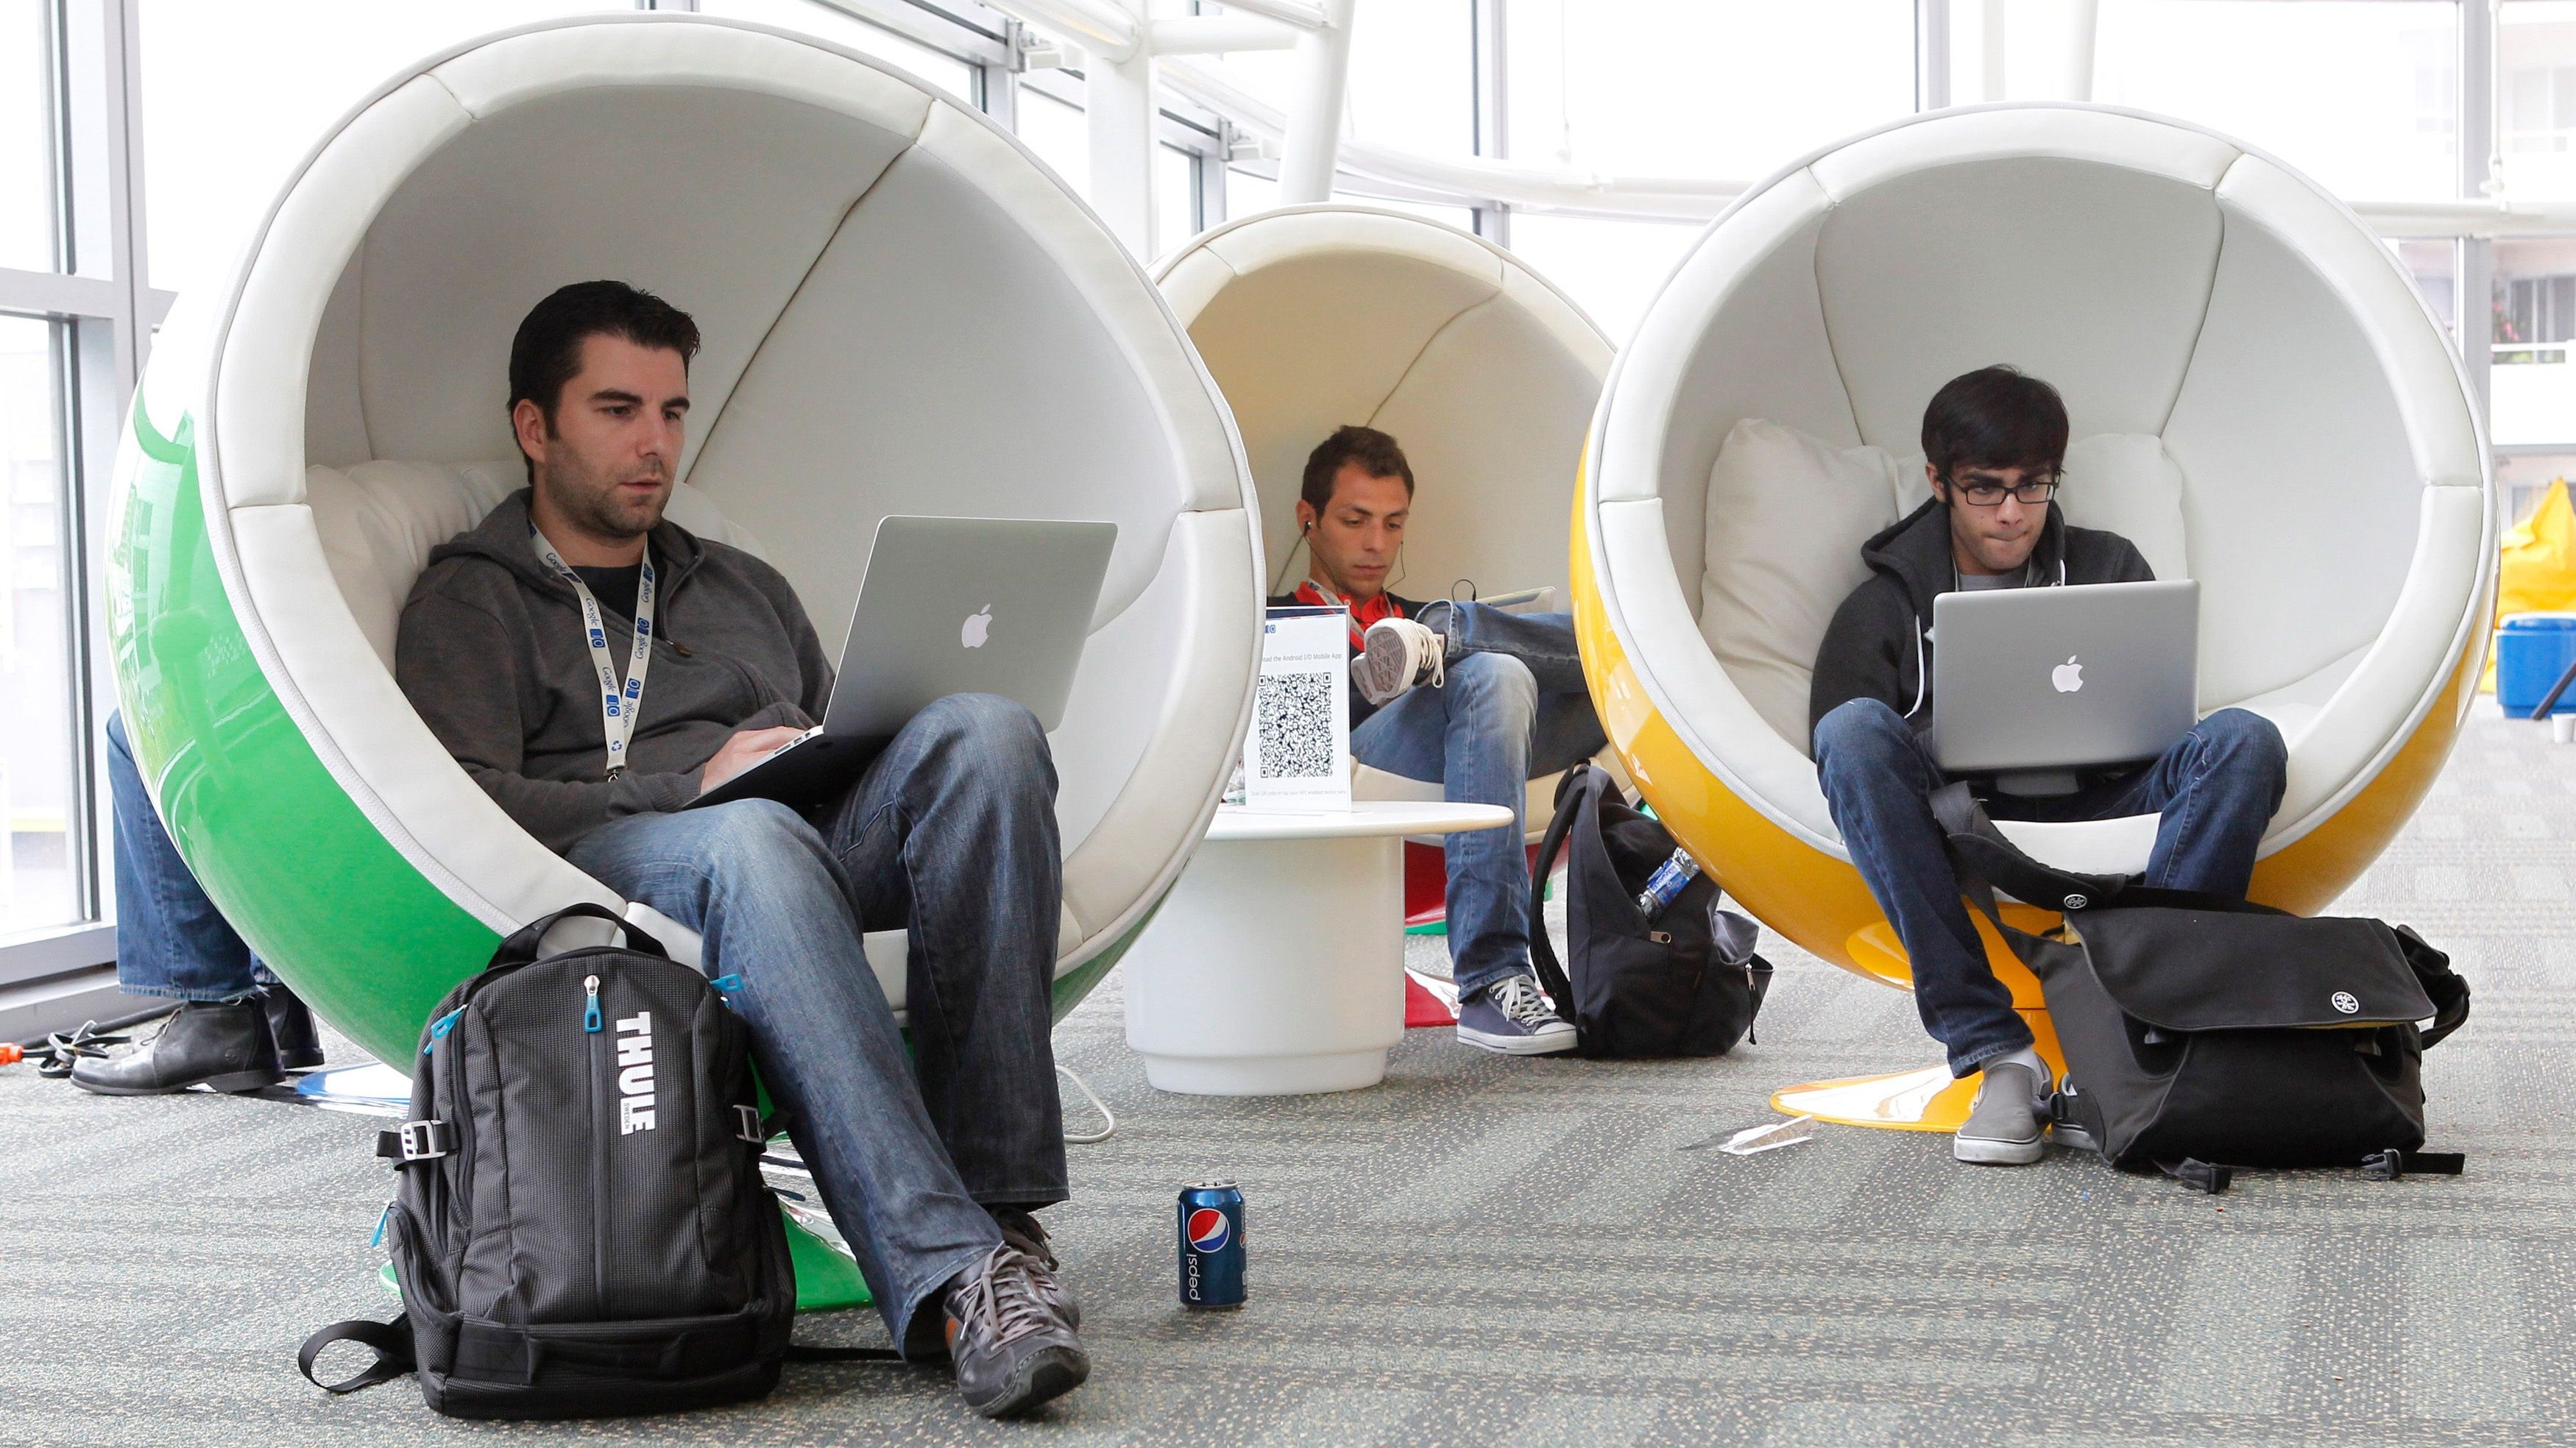 Matthias Klabbenbach (L), of eBay, Massimo Paladin (2nd L), of Cern, and Shahruz Shaukat, of University of California at Davis, take a break between events at the Google I/O Developers Conference in the Moscone Center in San Francisco.